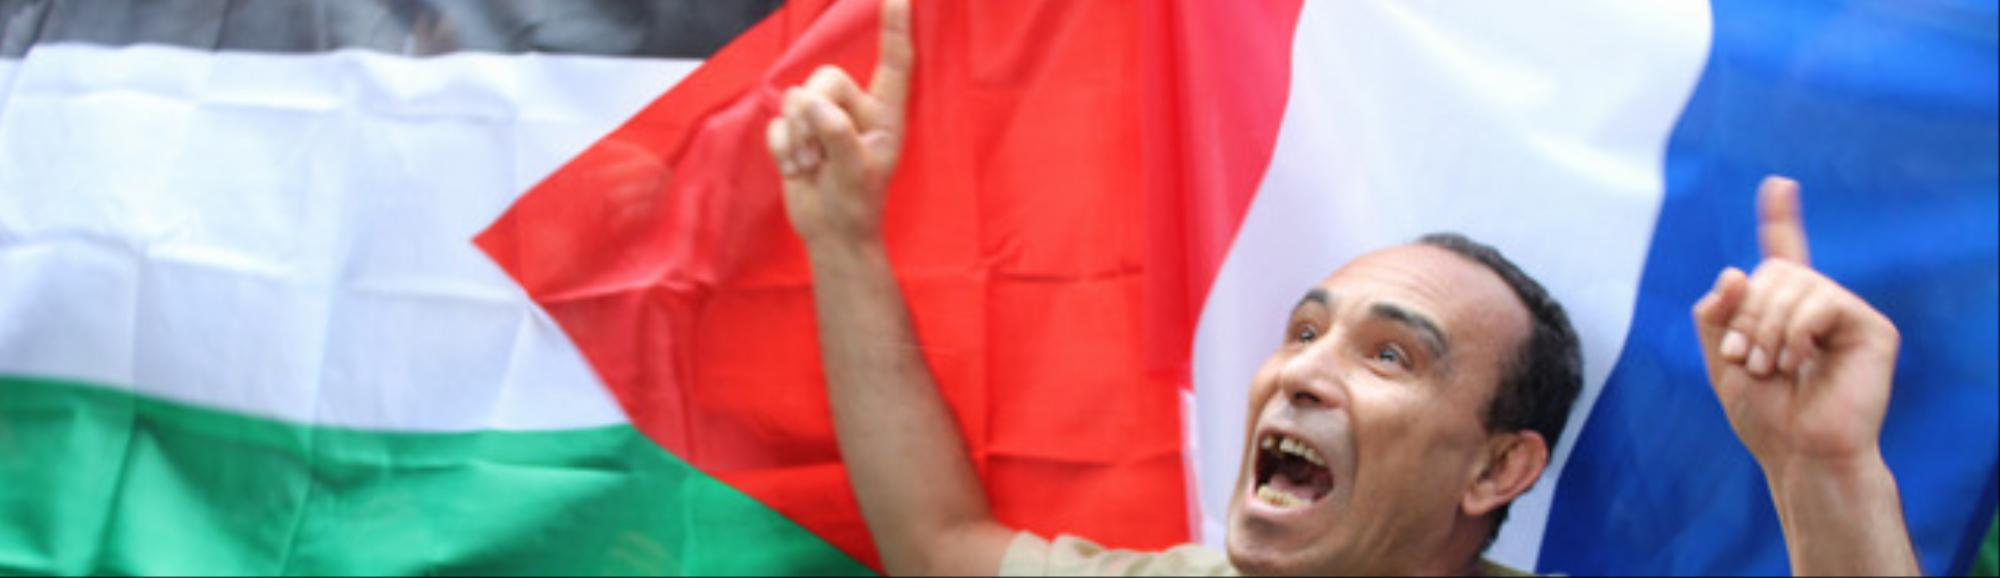 In Photos: A Pro-Palestine Protest Descended Into Anti-Semitism in Paris This Weekend